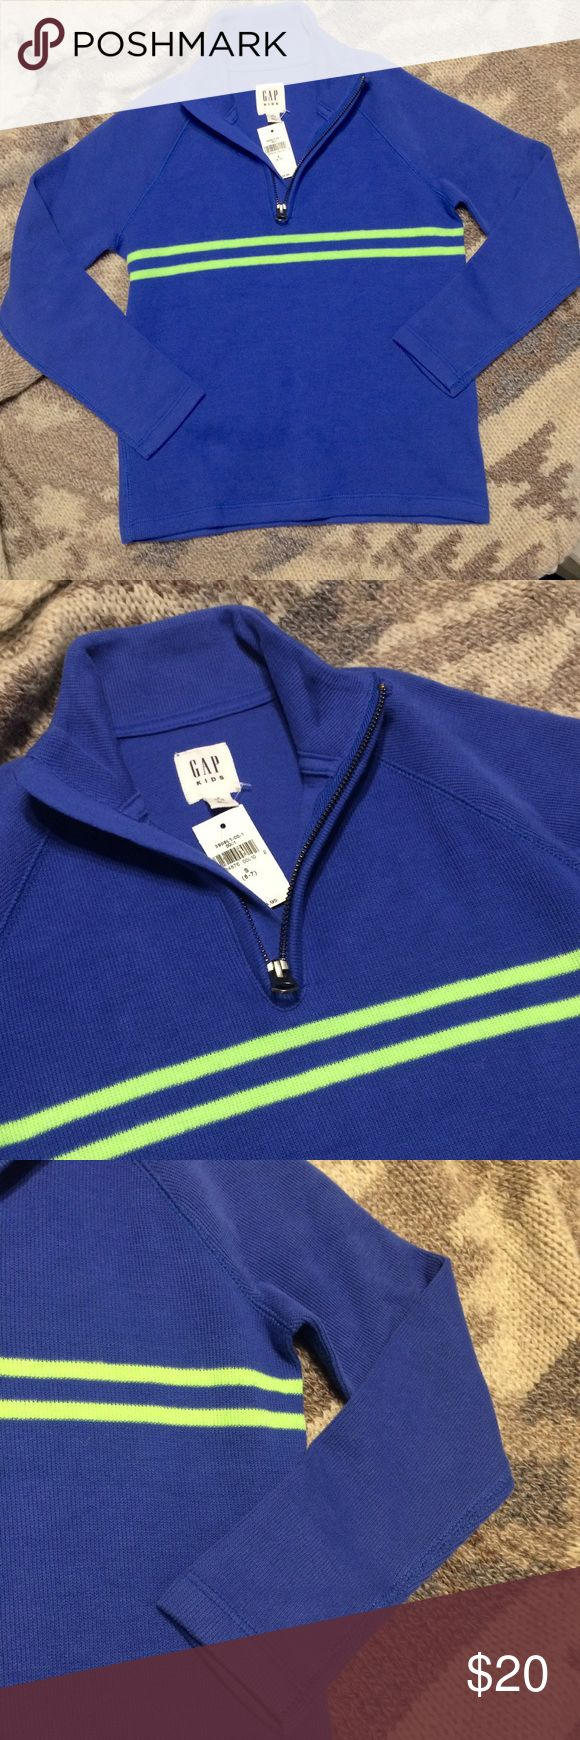 NEW Boy's GAP Sweater New with tags Boy's GAP Kids Sweater. Blue with green stripes and zip closure. See photos for detail. Great for church, family pictures, or any day for a well dressed kid! 😄 Size 6-7 (Small) GAP Shirts & Tops Sweaters